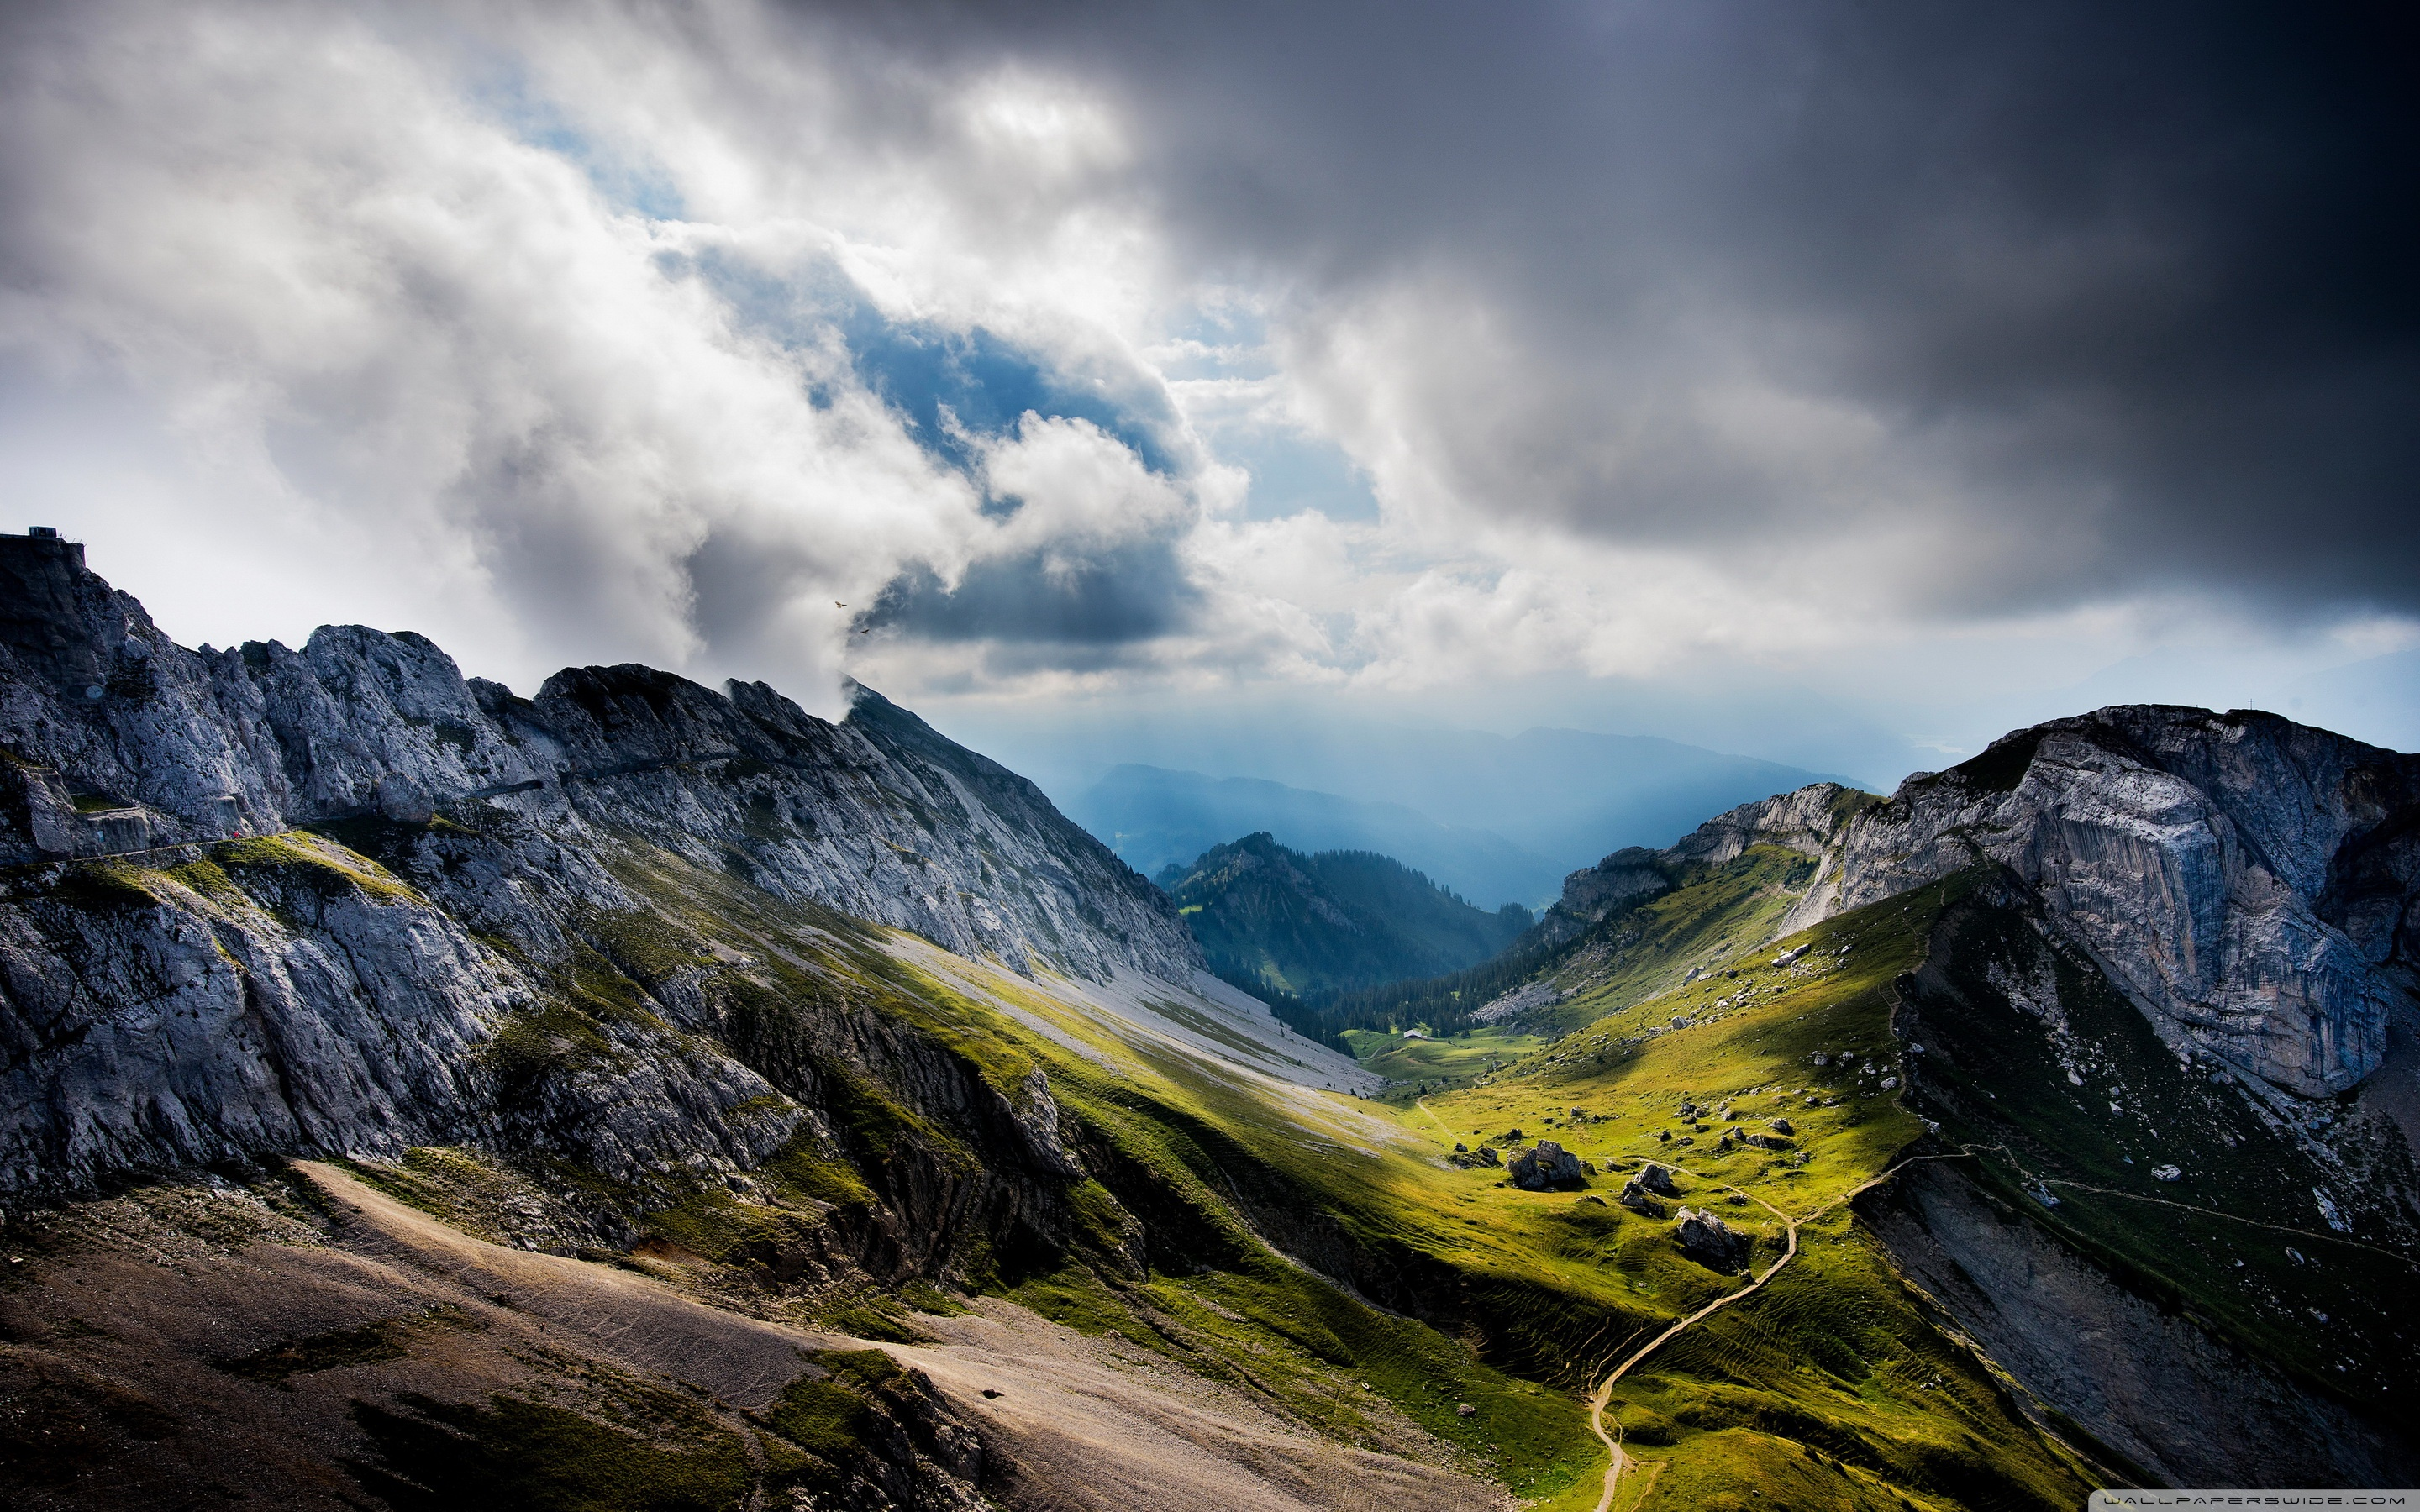 Mount Pilatus Wallpapers and Background Images   stmednet 2880x1800